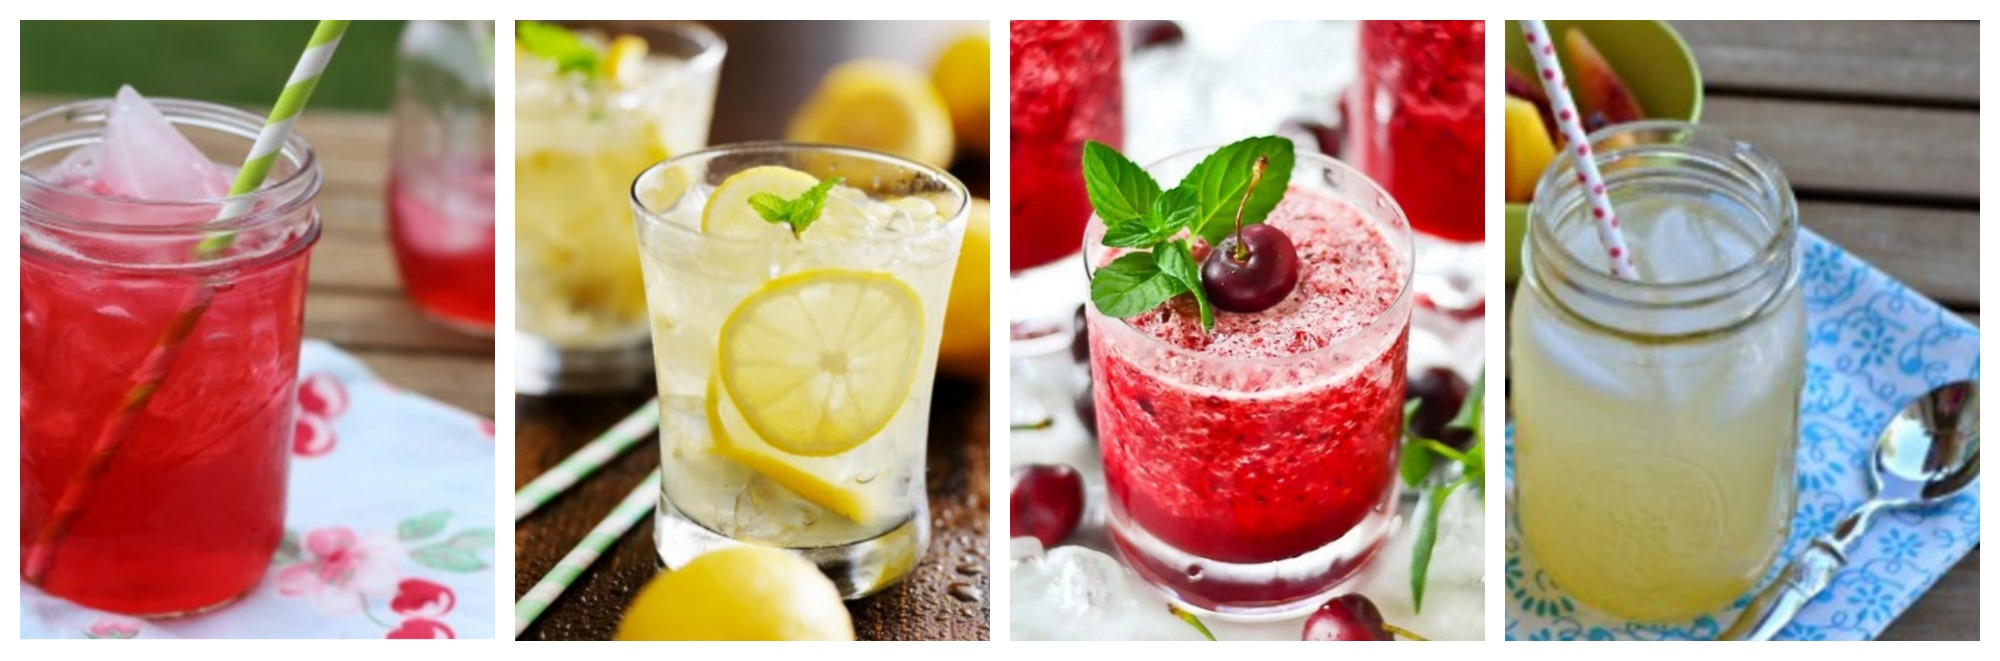 homemade lemonade recipes